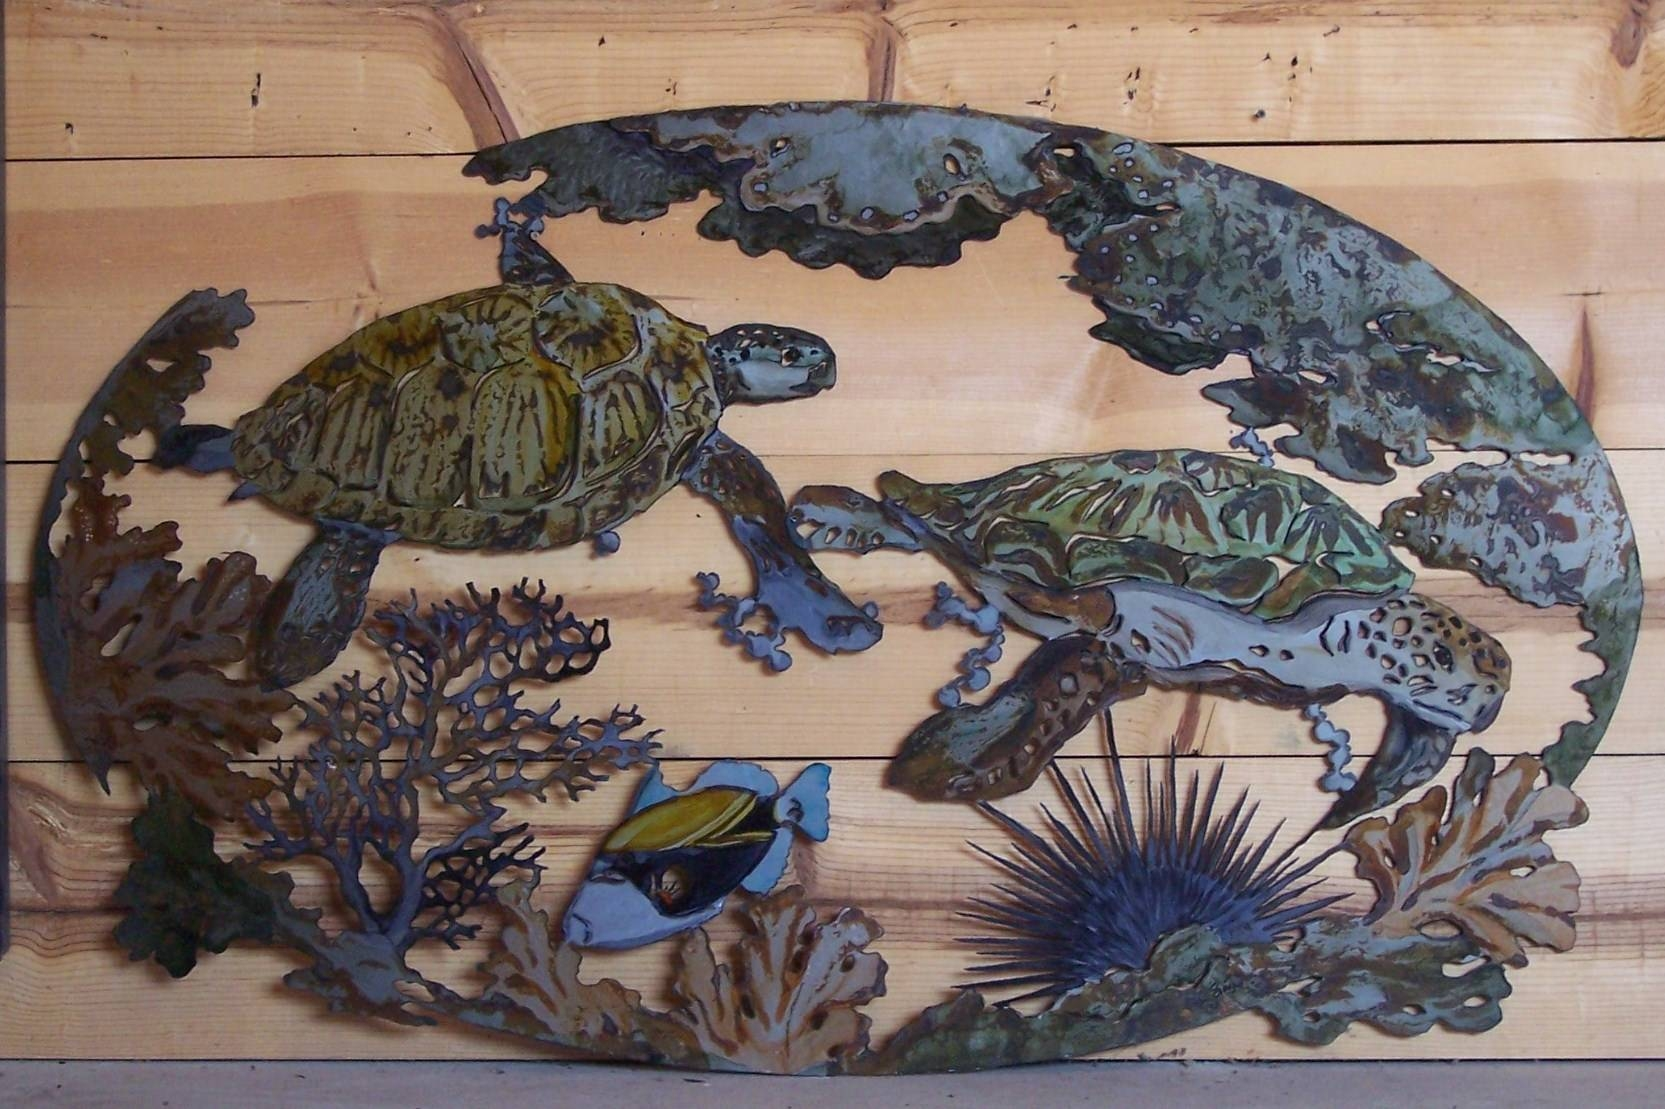 Wall Art Designs: Sea Turtle Wall Art Underwater Fish Coral Throughout Best And Newest Sea Turtle Metal Wall Art (View 1 of 20)